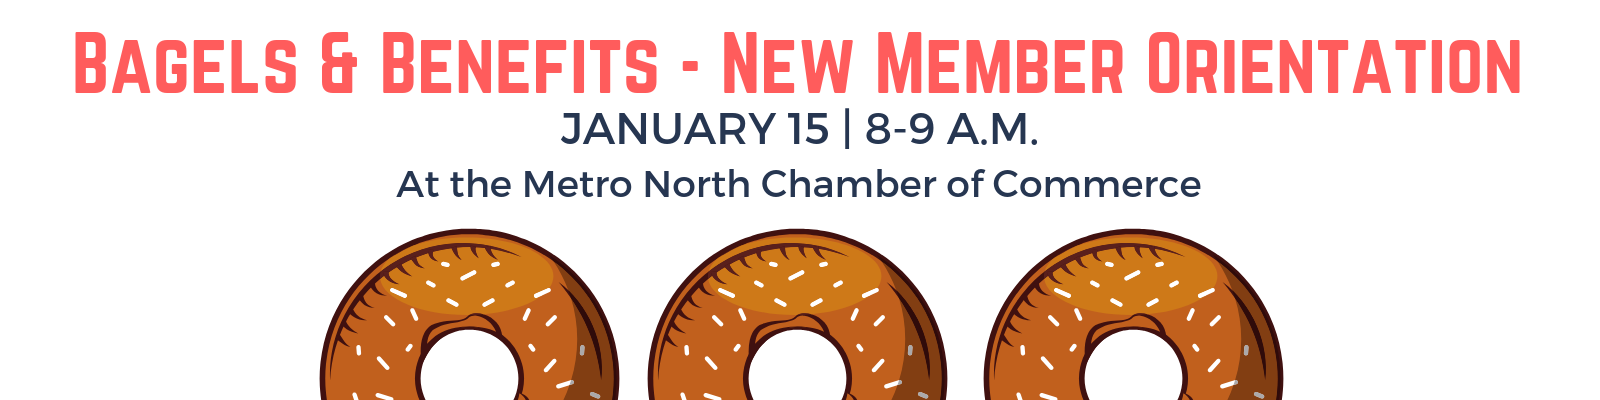 Bagels-and-Benefits-Jan-2019-Web-Banner.png